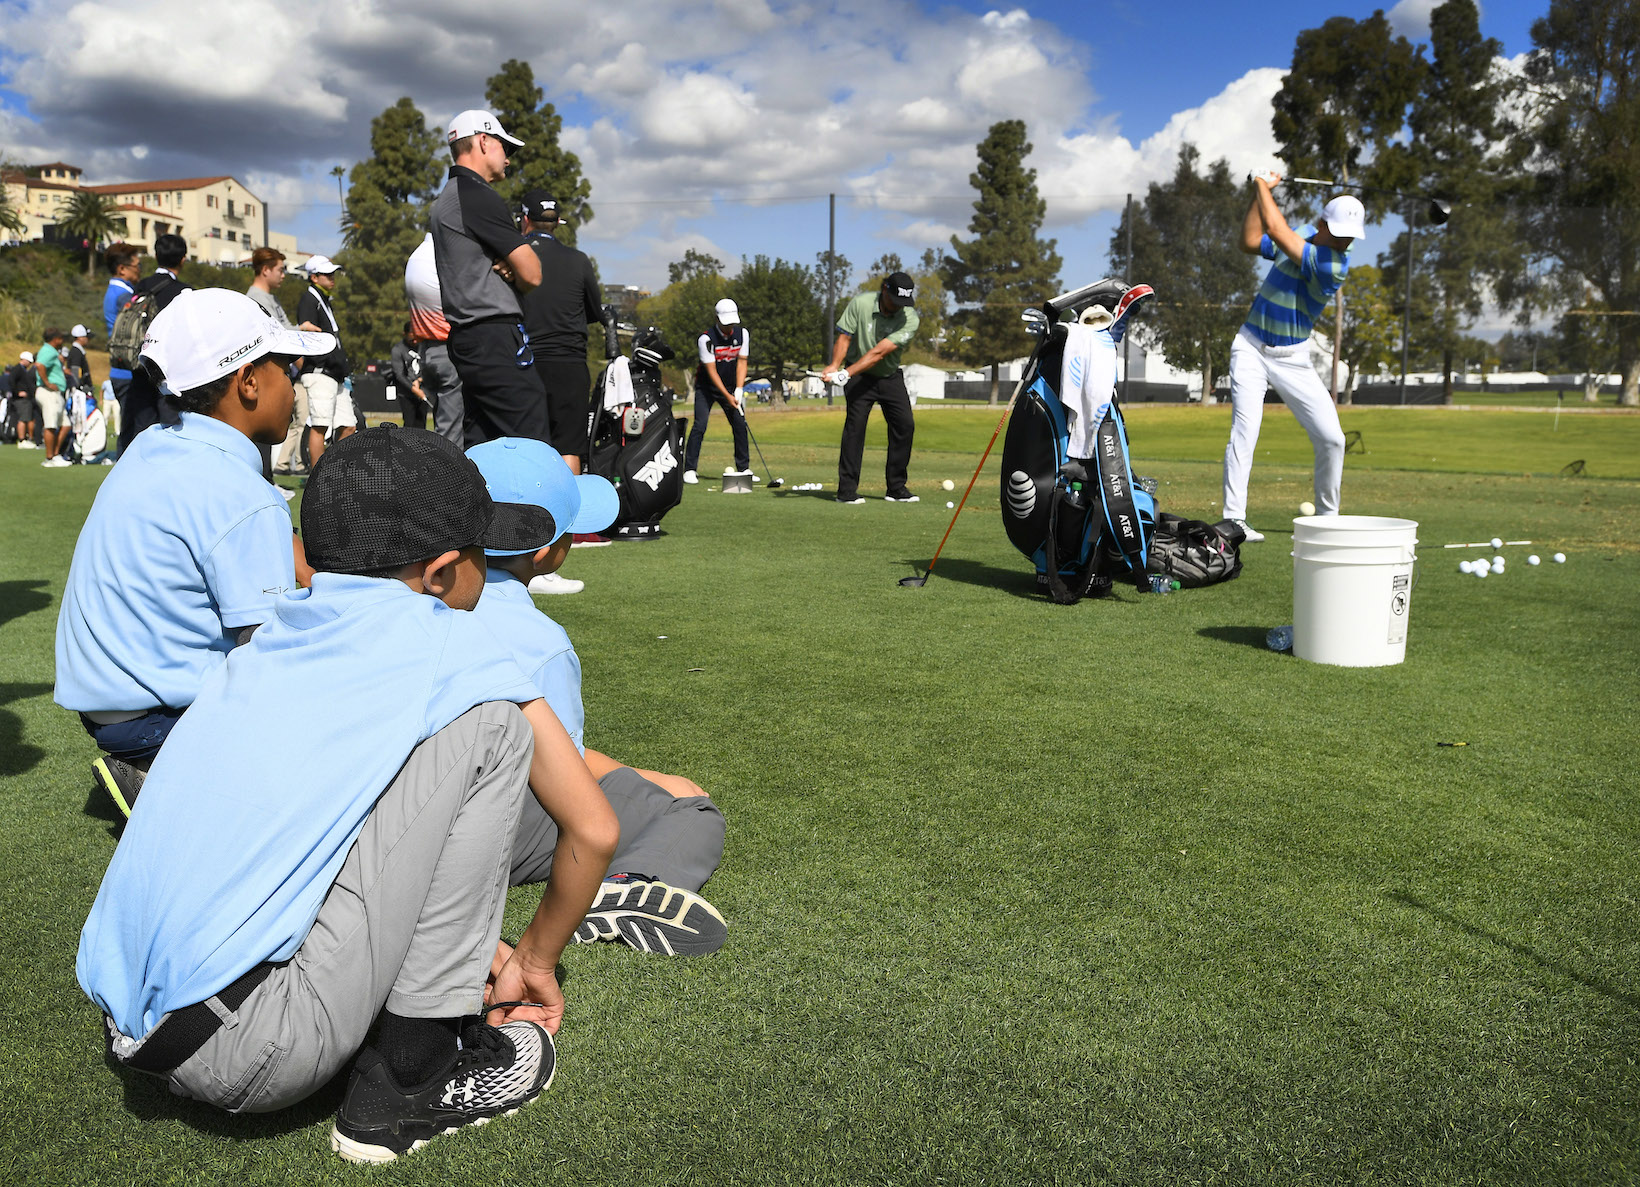 2018 Genesis Open: Pro-Am - Kids Watching Jordan at the Practice Range